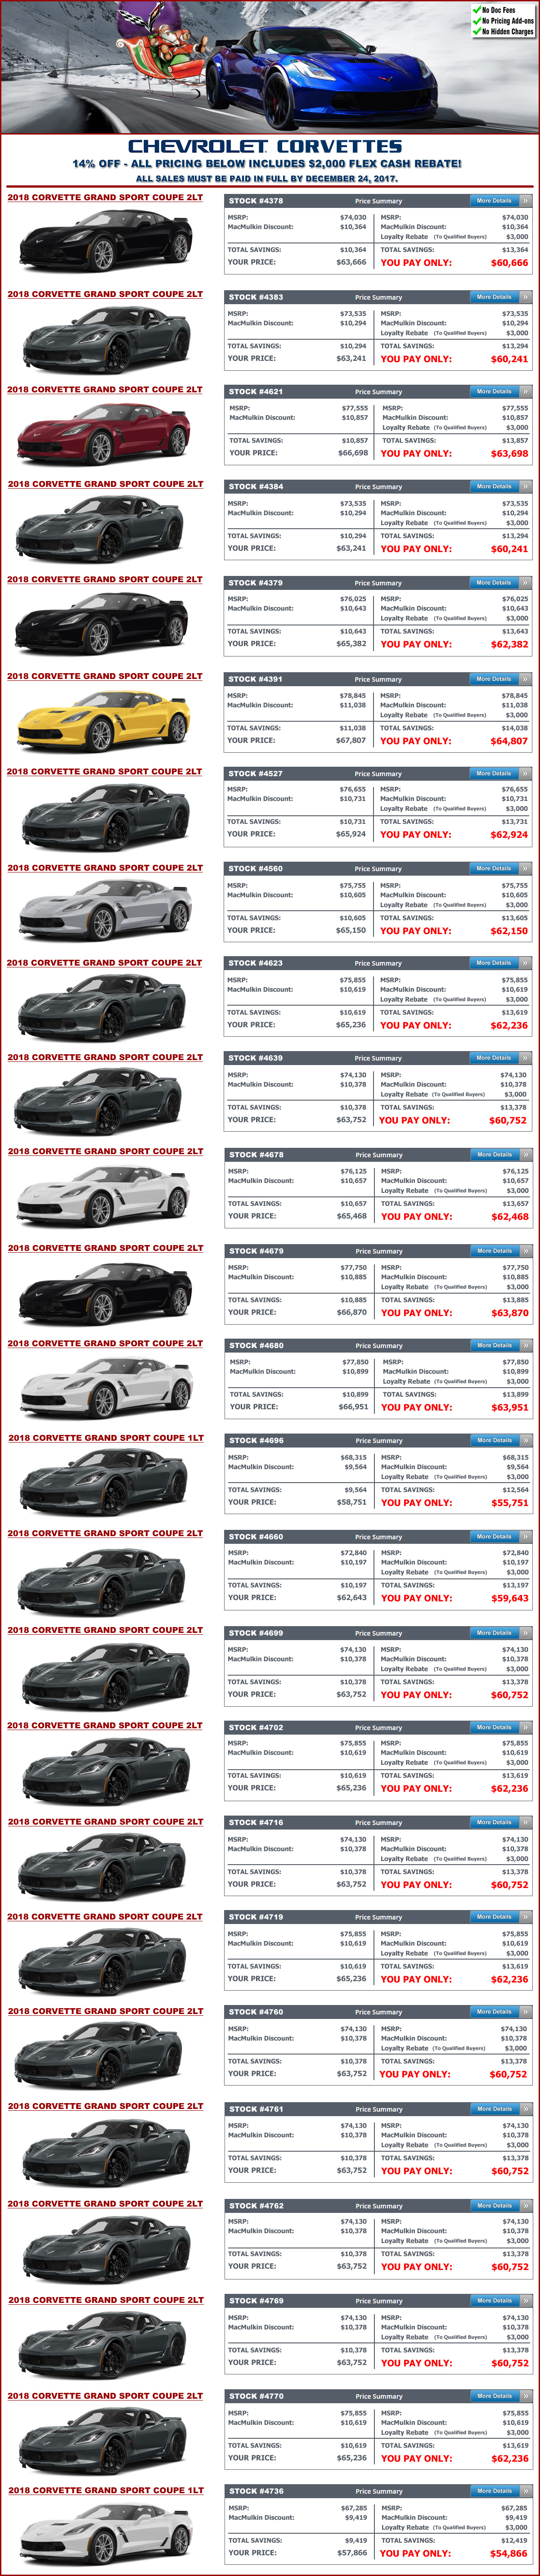 MacMulkin Chevrolet 20 18 Corvette Blowout Sale